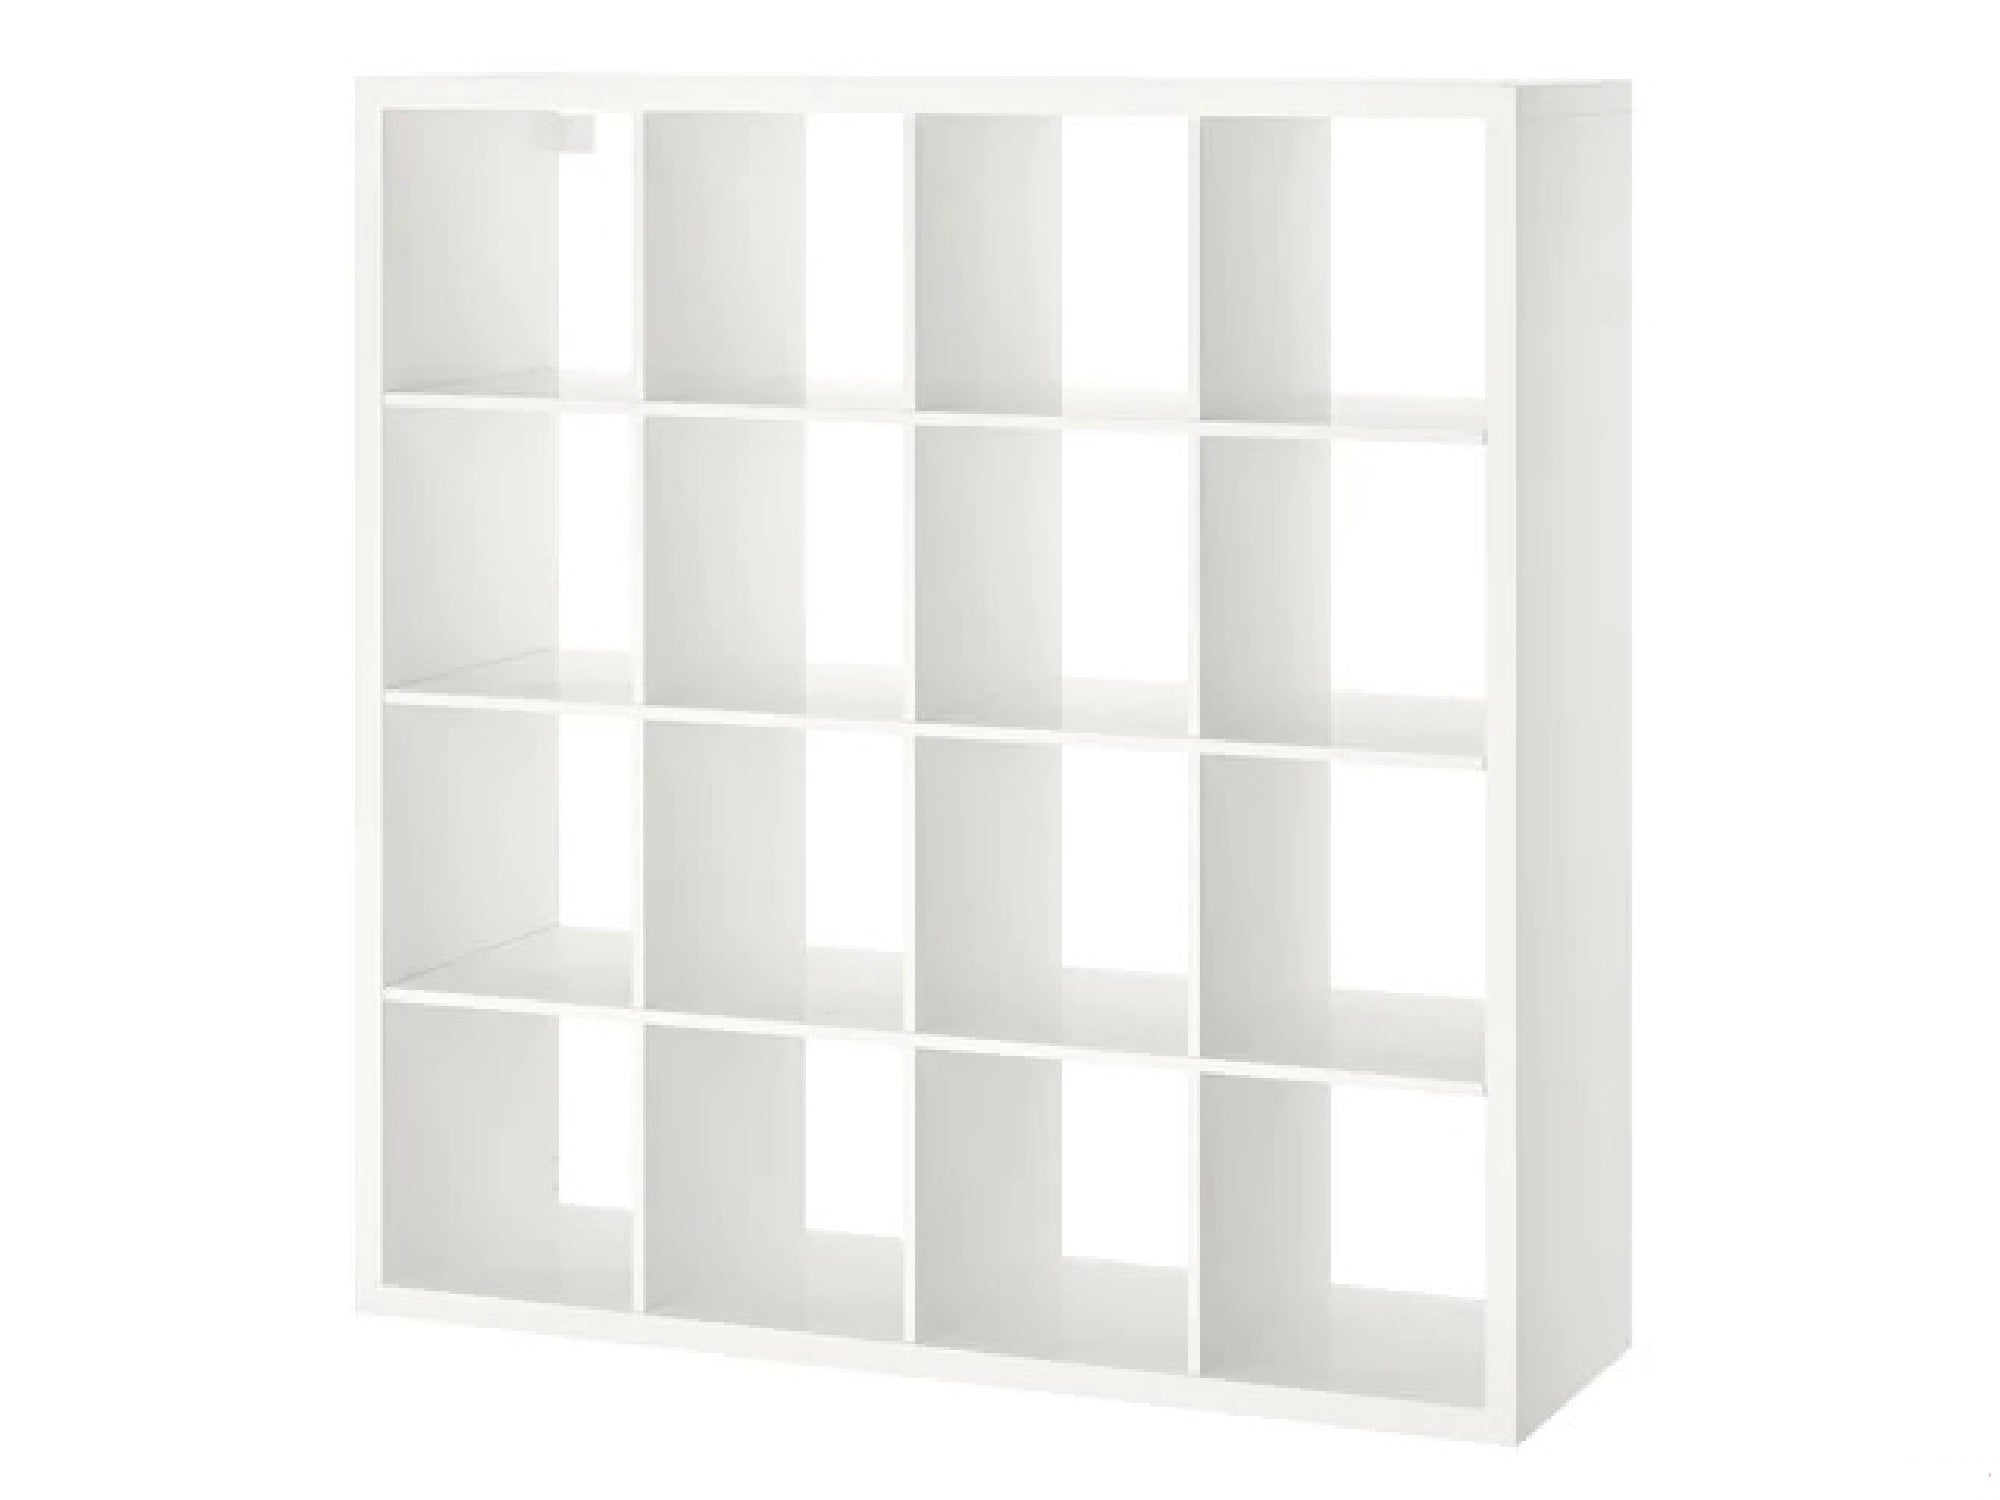 PEACHTREE 16 SLOT DISPLAY UNIT - WHITE